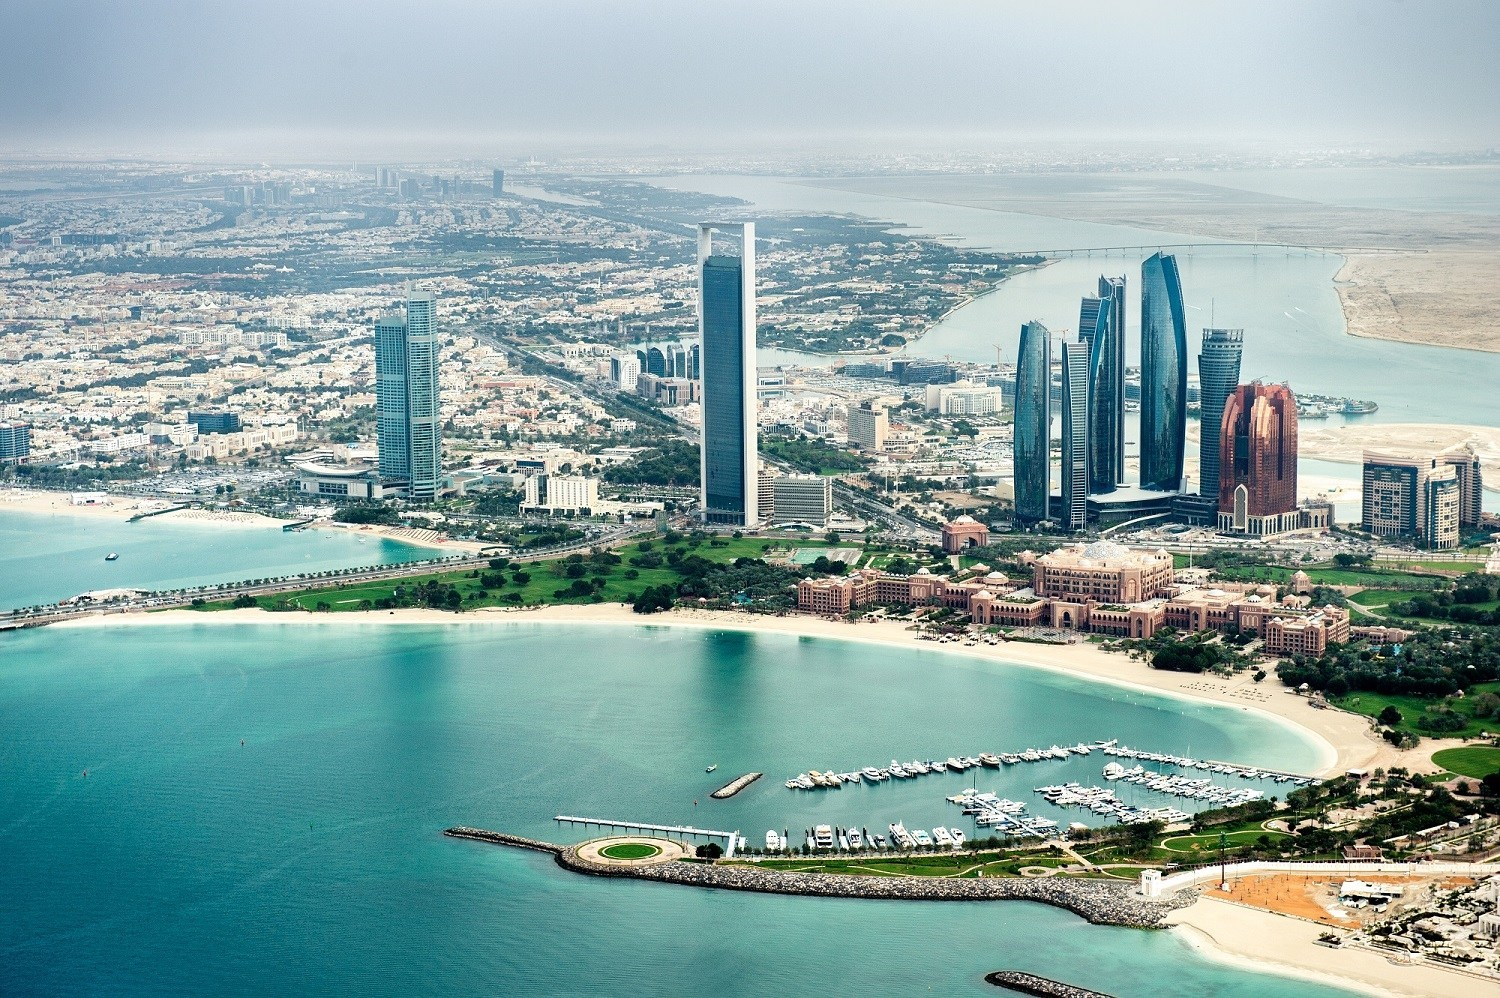 Unvaccinated travellers from 'Green List' countries also able to enter Abu Dhabi with no quarantine.